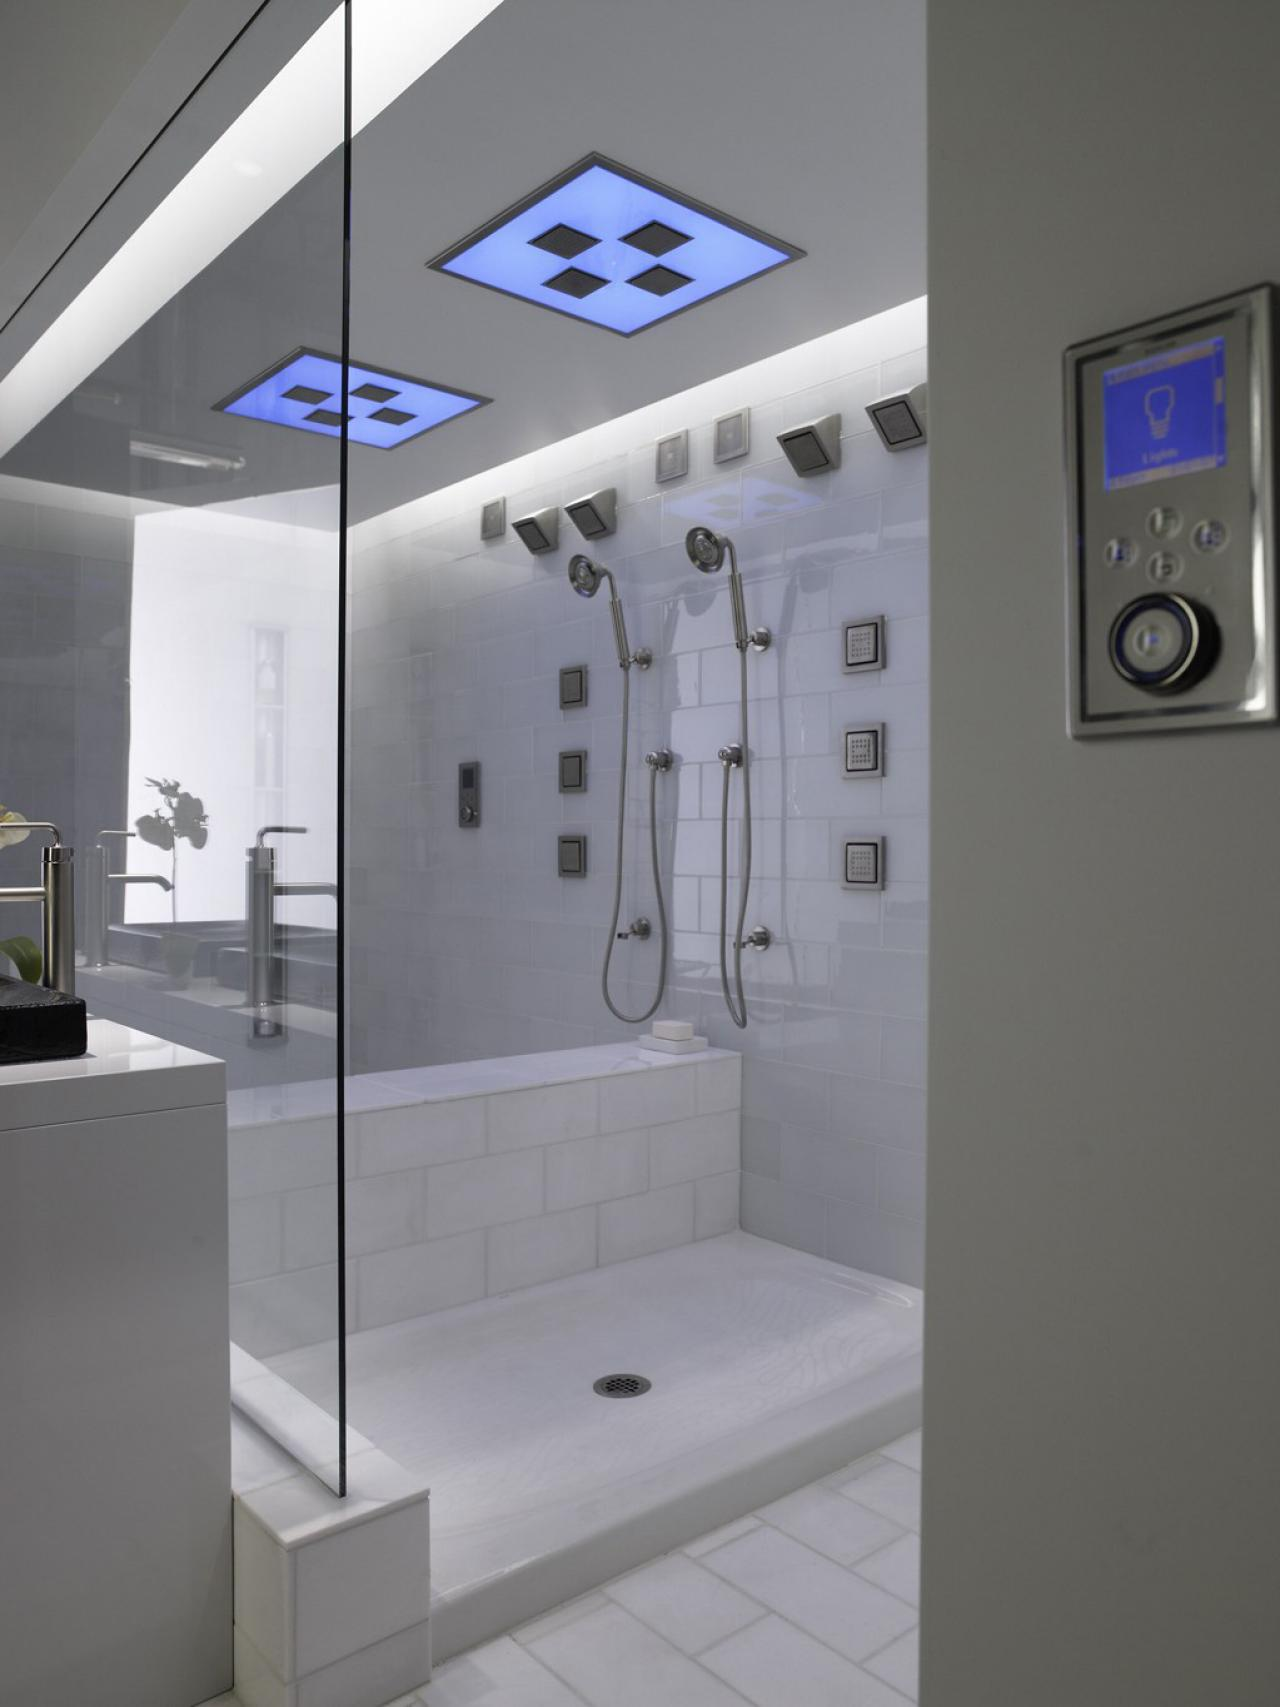 Related To  Universal Design Showers Safety and Luxury HGTV